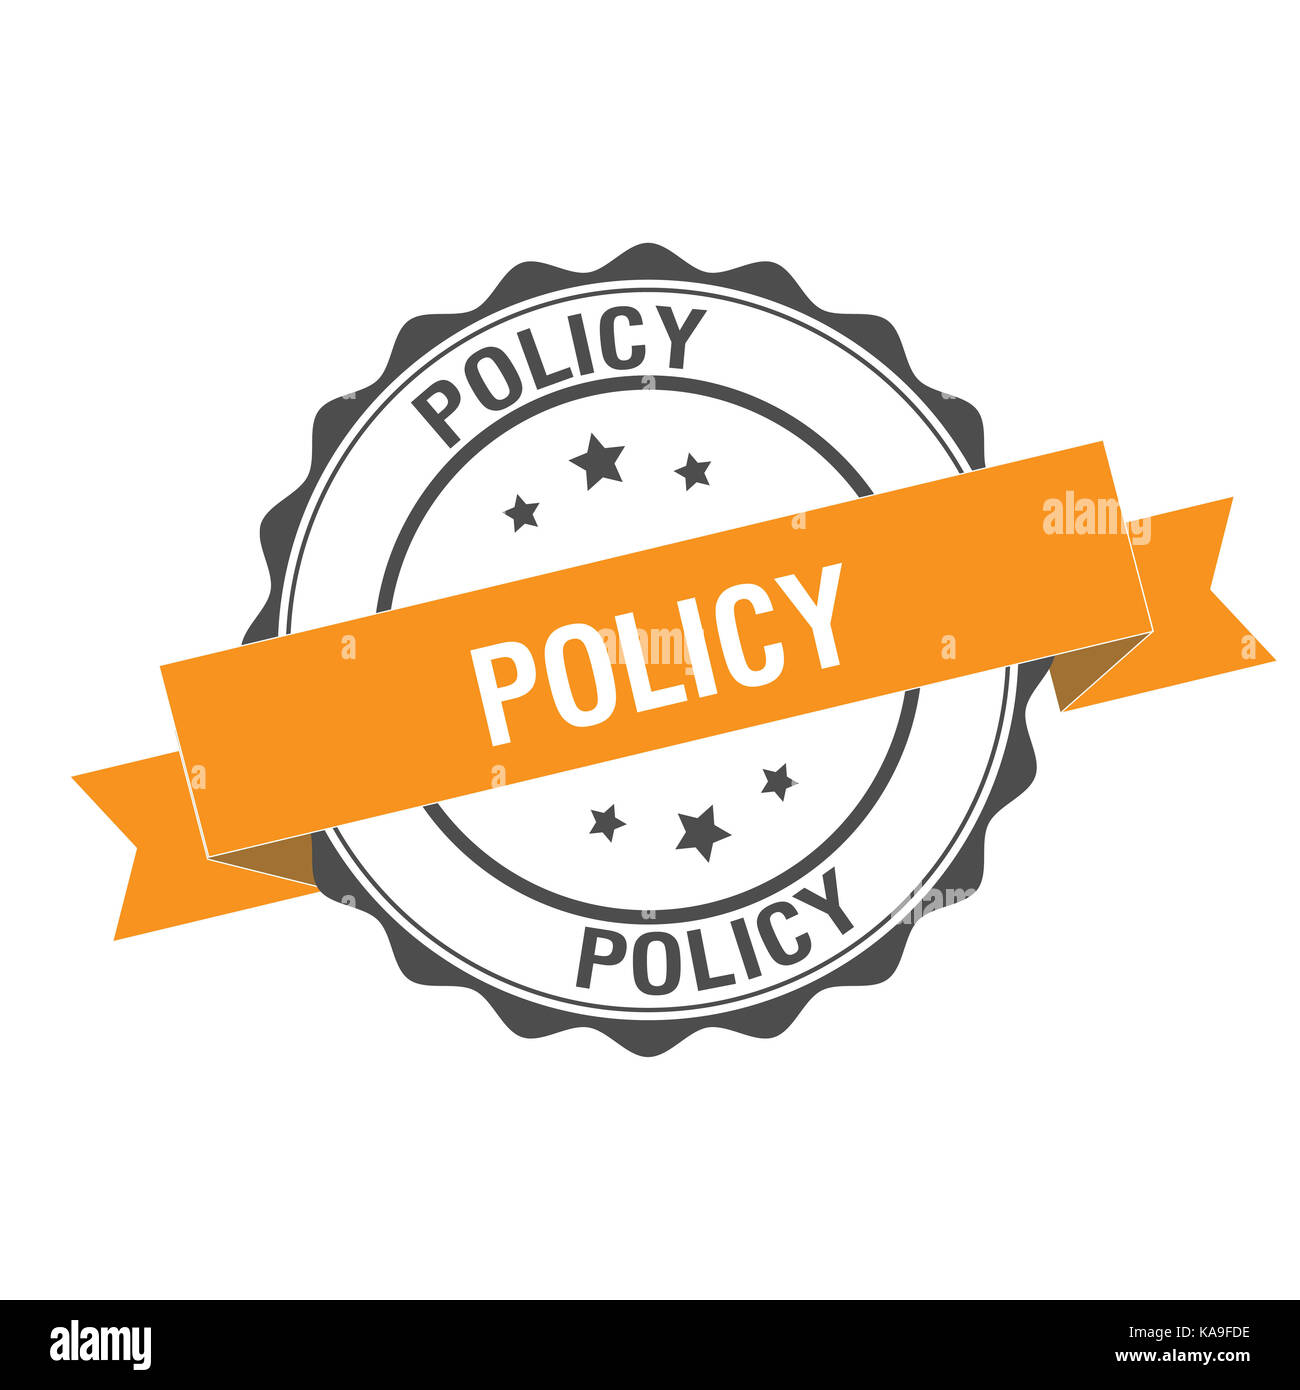 Policy stamp illustration - Stock Image